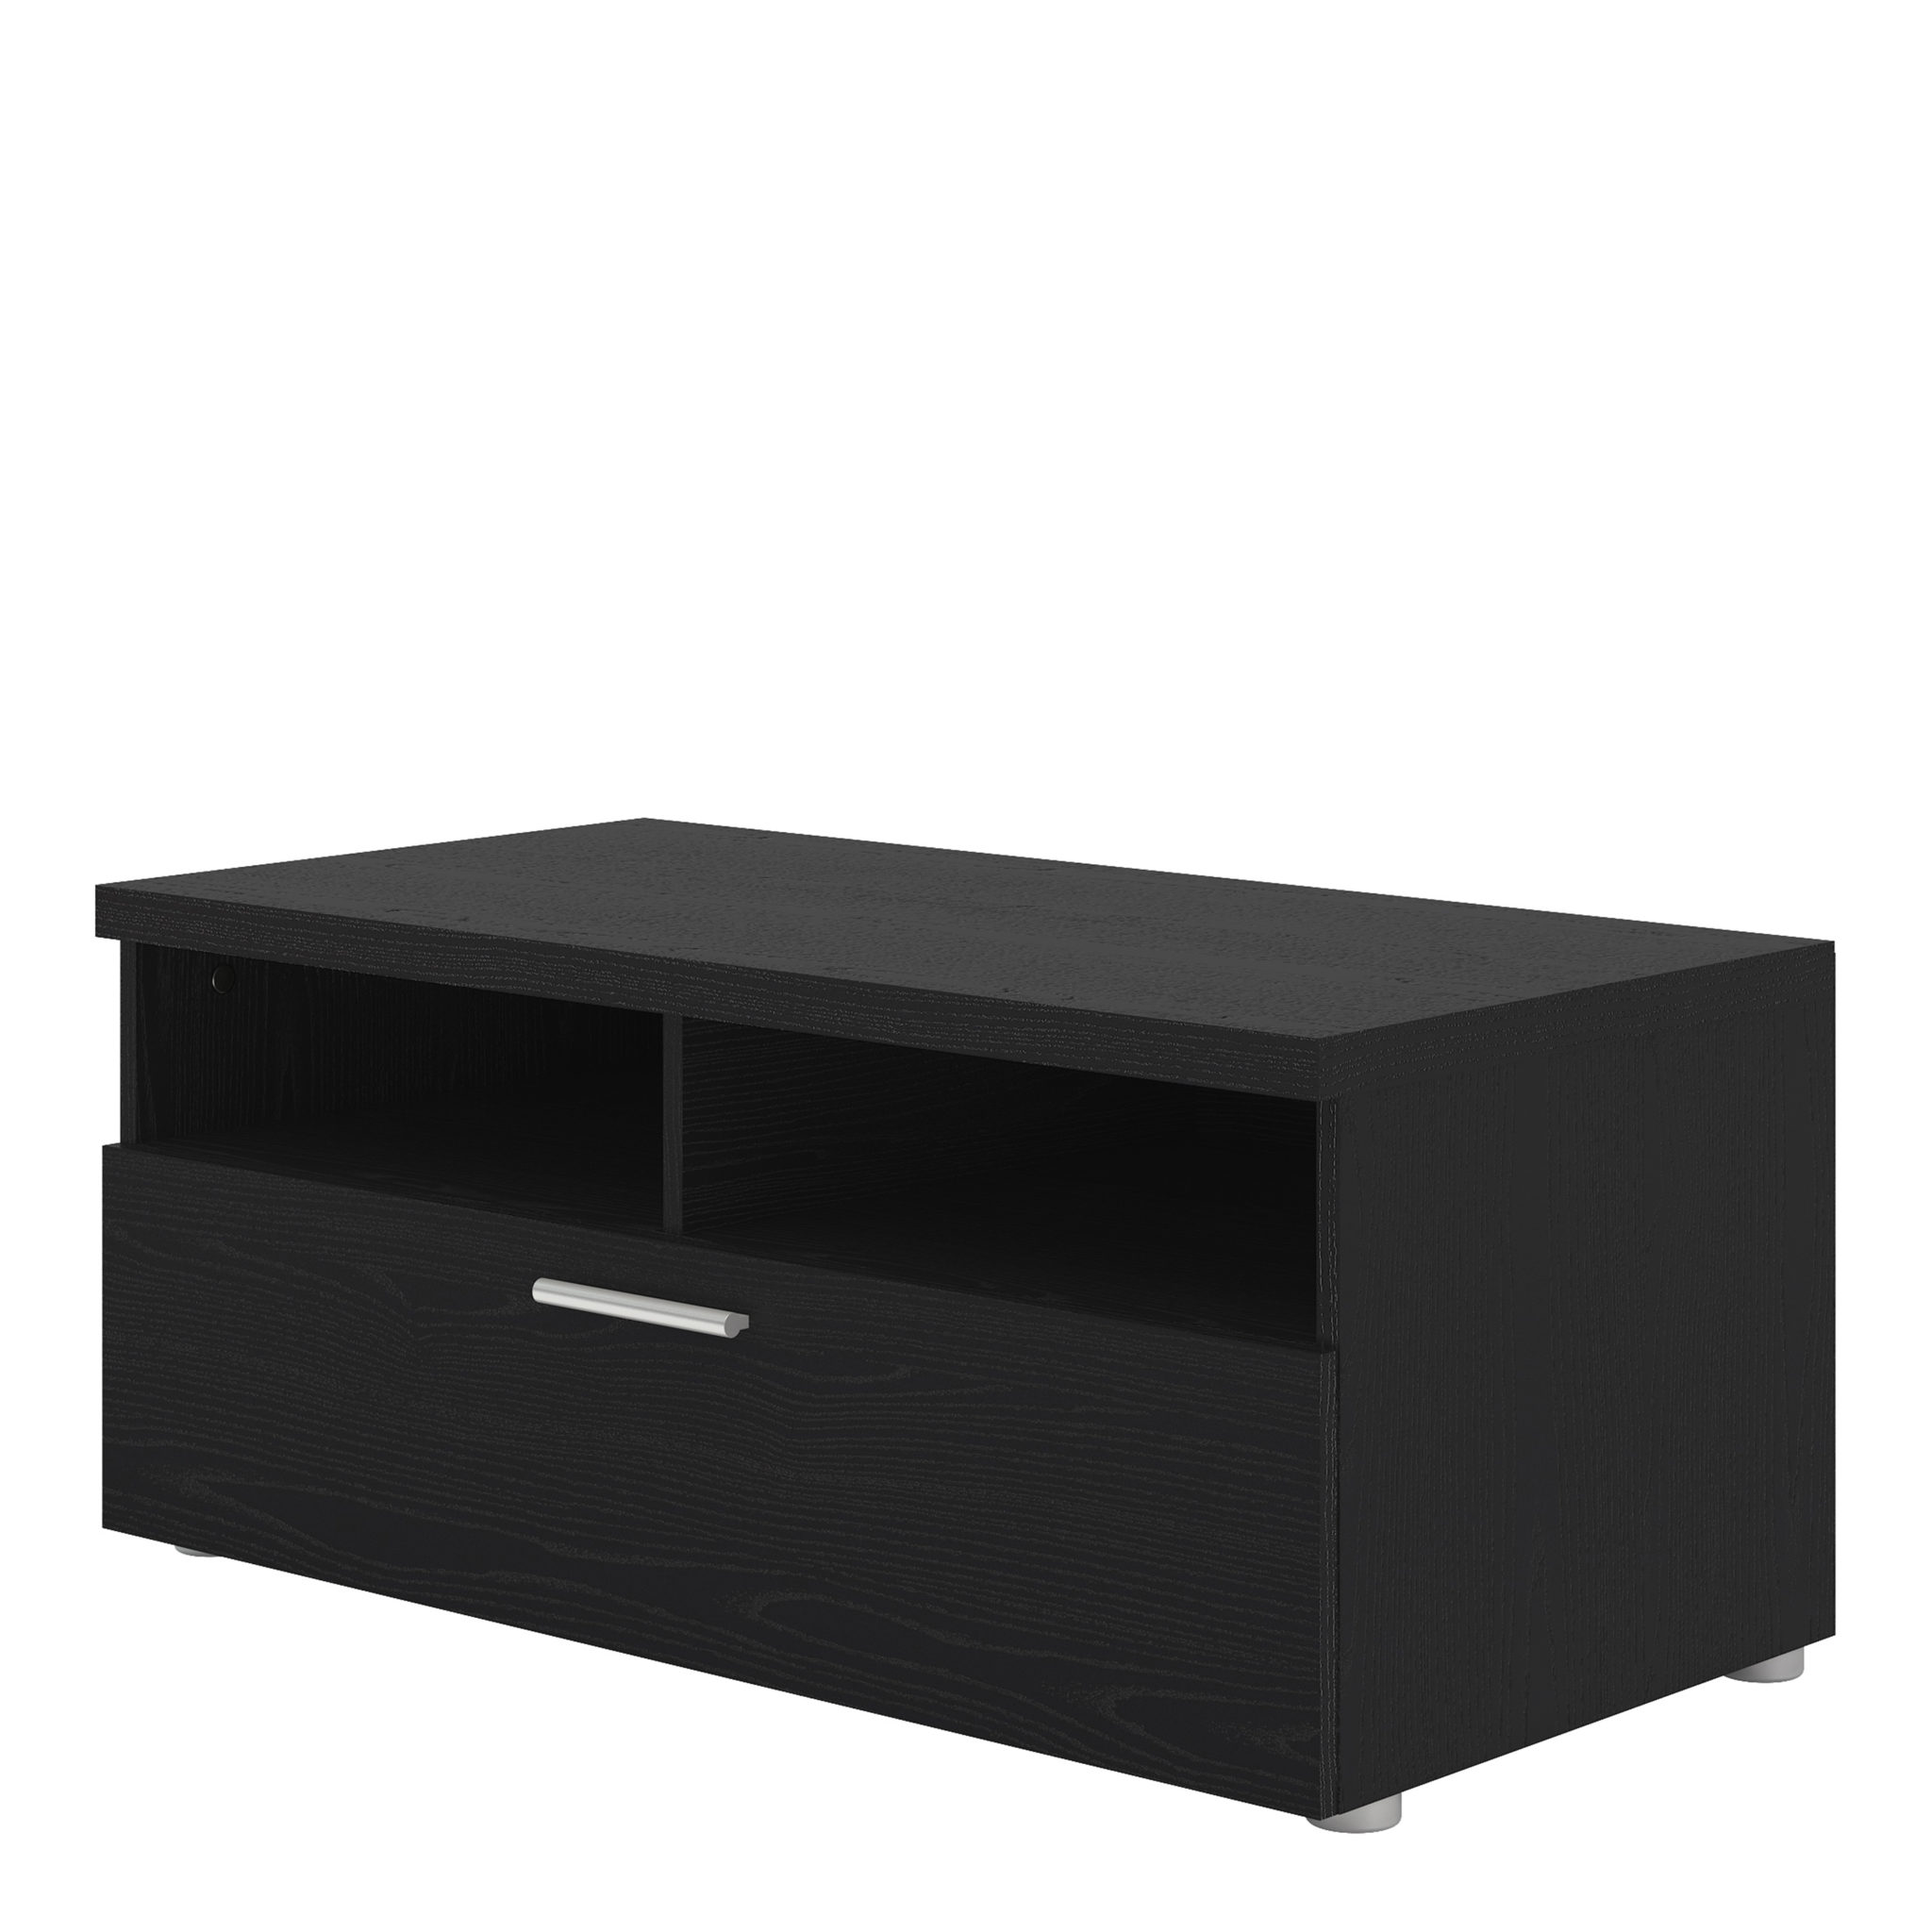 TV Unit 1 Drawer 2 Shelves in Black Woodgrain